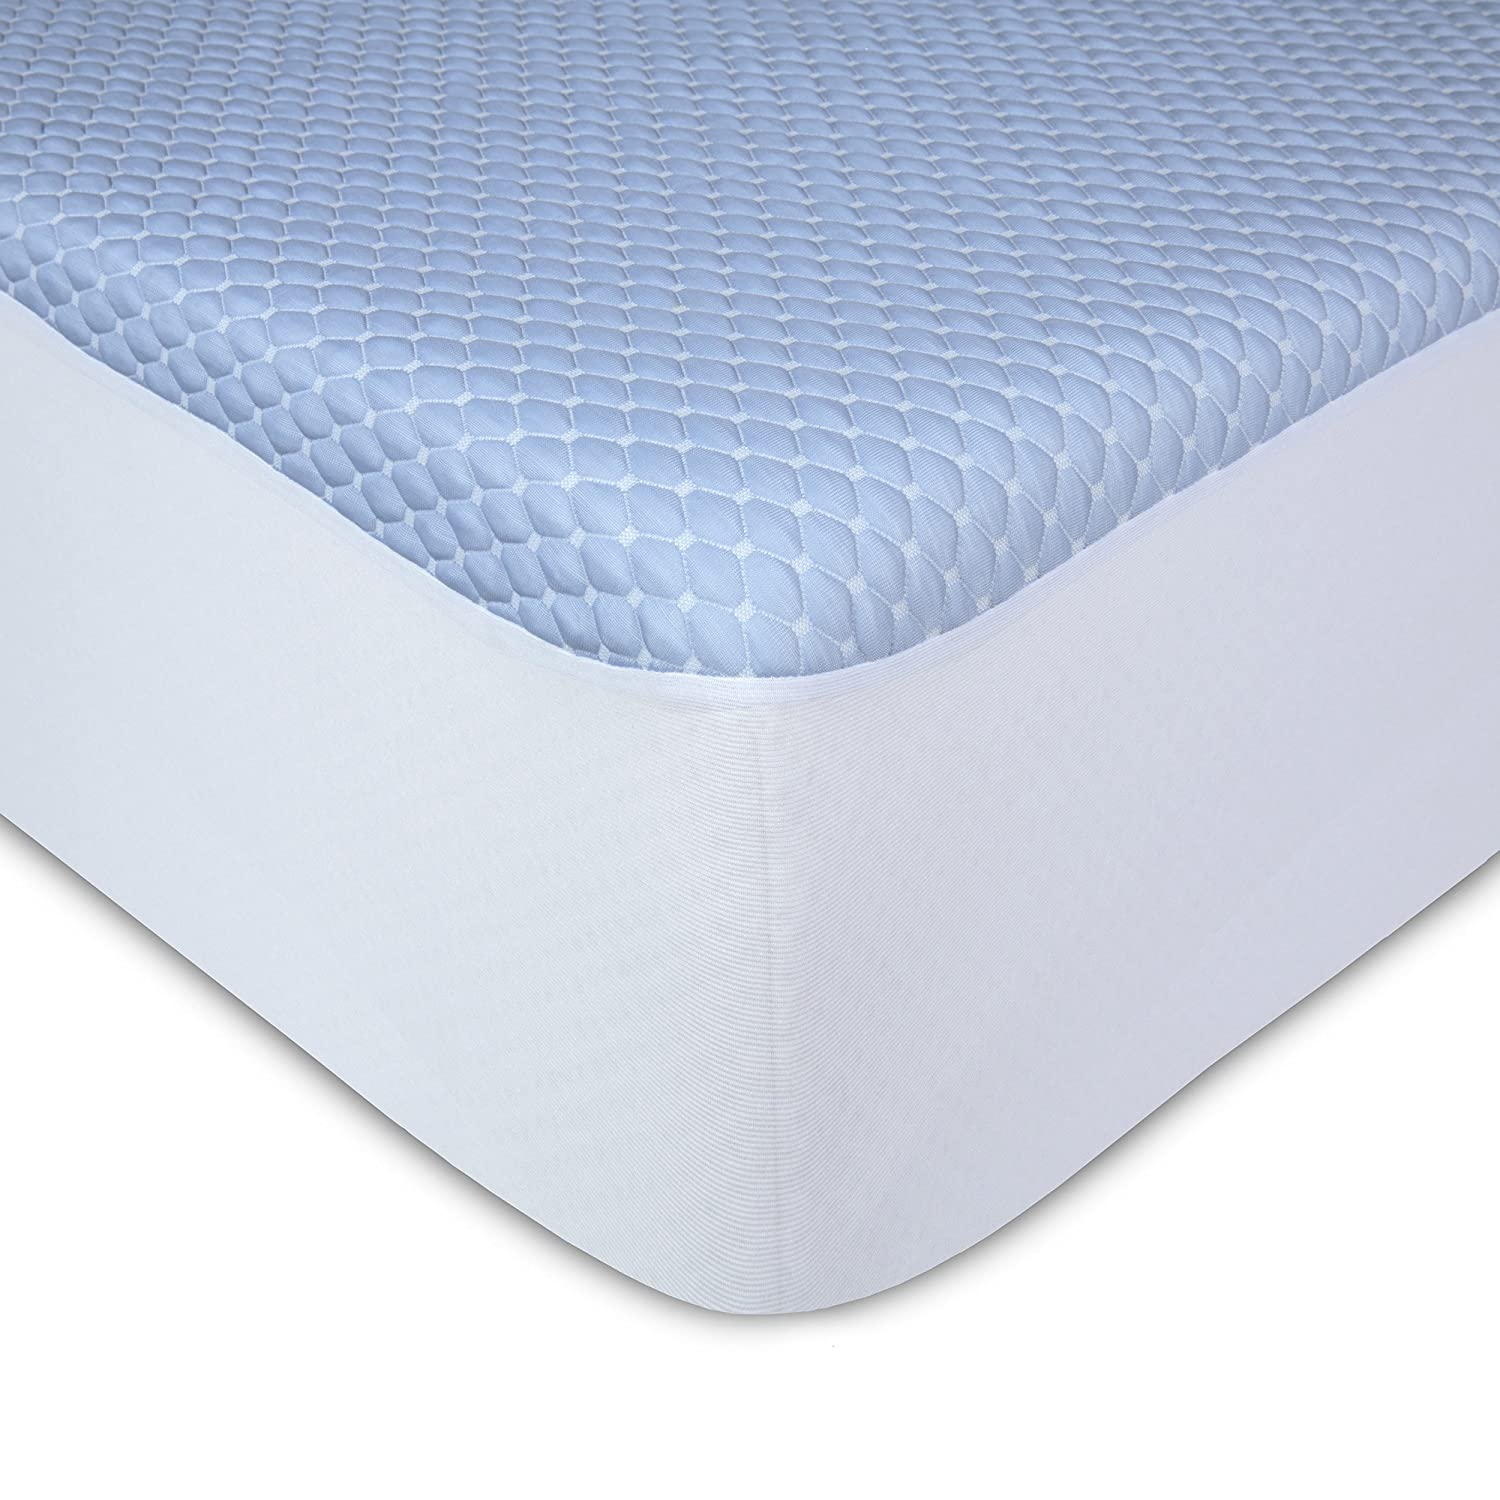 Amazon.com: Leggett & Platt Sleep Chill + Crystal Gel Mattress Protector with Cooling Fibers and Blue 3-D Fabric, King: Home & Kitchen